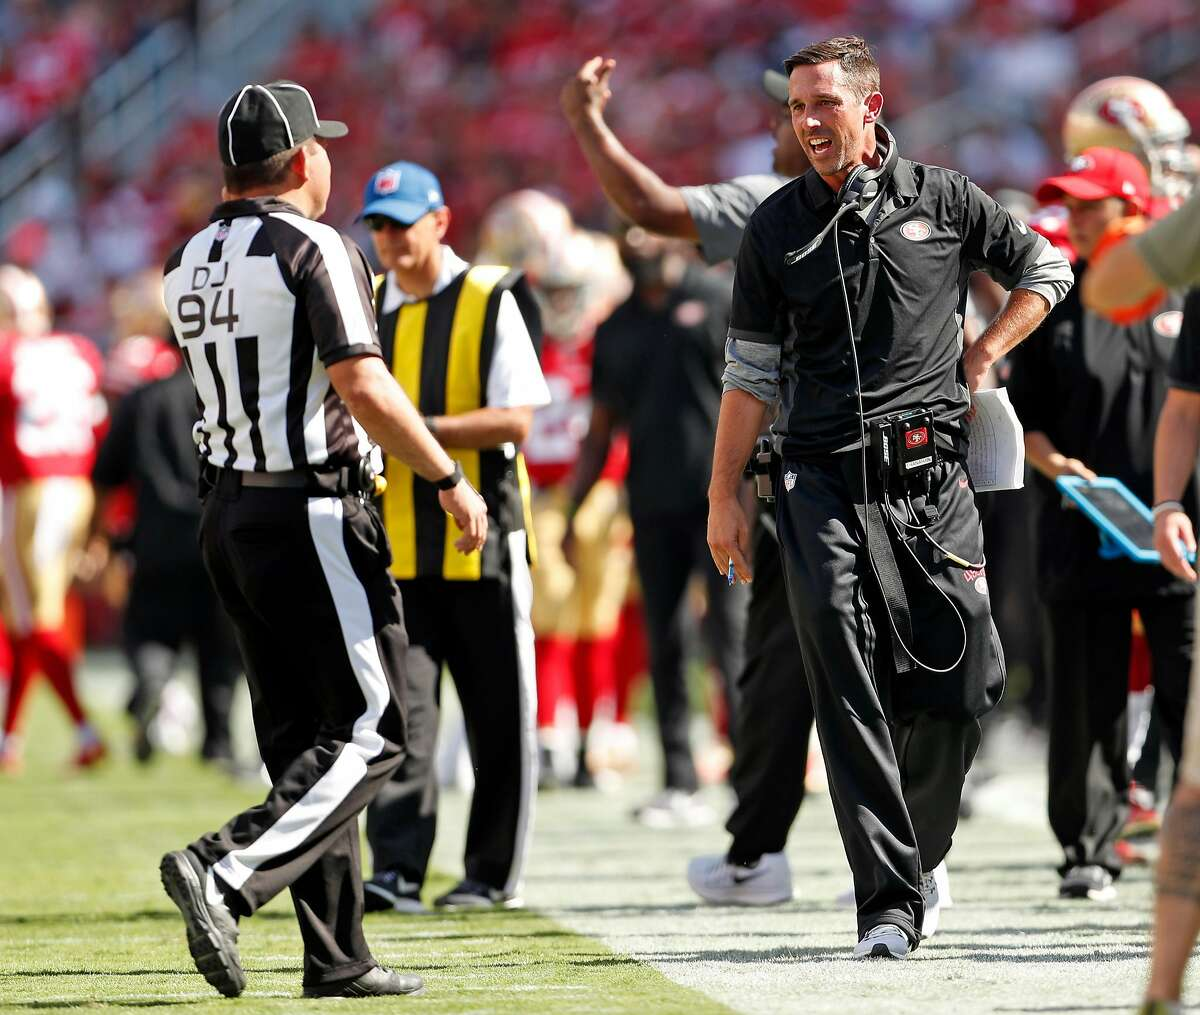 San Francisco 49ers' head coach Kyle Shanahan complains about a non-call in 4th quarter of Carolina Panthers' 23-3 win in NFL game at Levi's Stadium in Santa Clara, Calif., on Sunday, September 10, 2017.